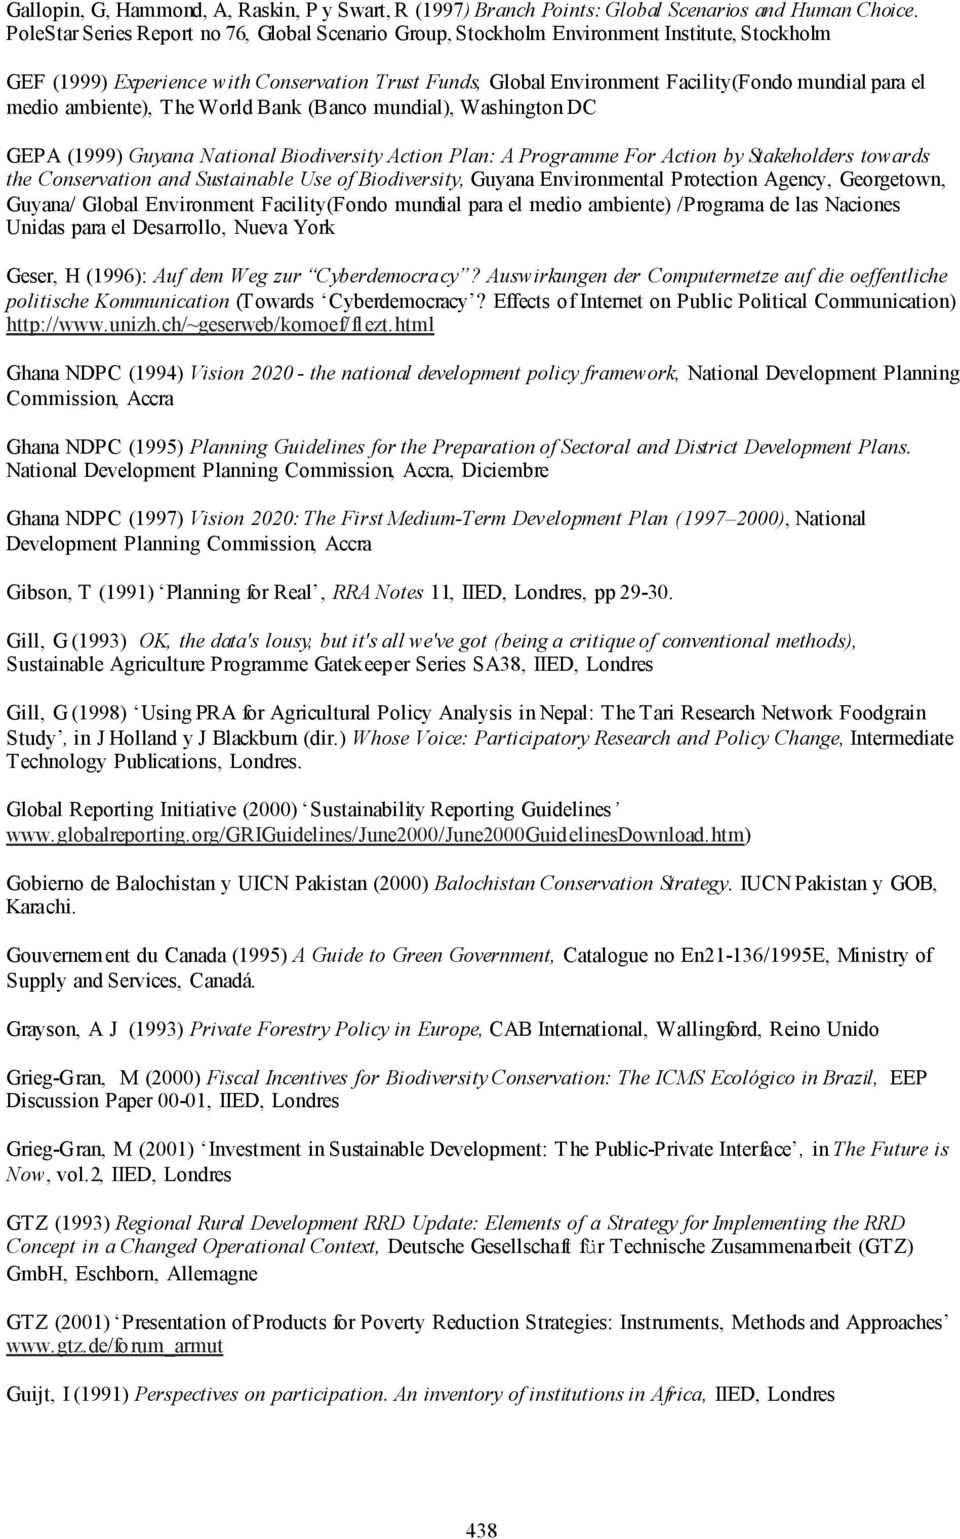 medio ambiente), The World Bank (Banco mundial), Washington DC GEPA (1999) Guyana National Biodiversity Action Plan: A Programme For Action by Stakeholders towards the Conservation and Sustainable